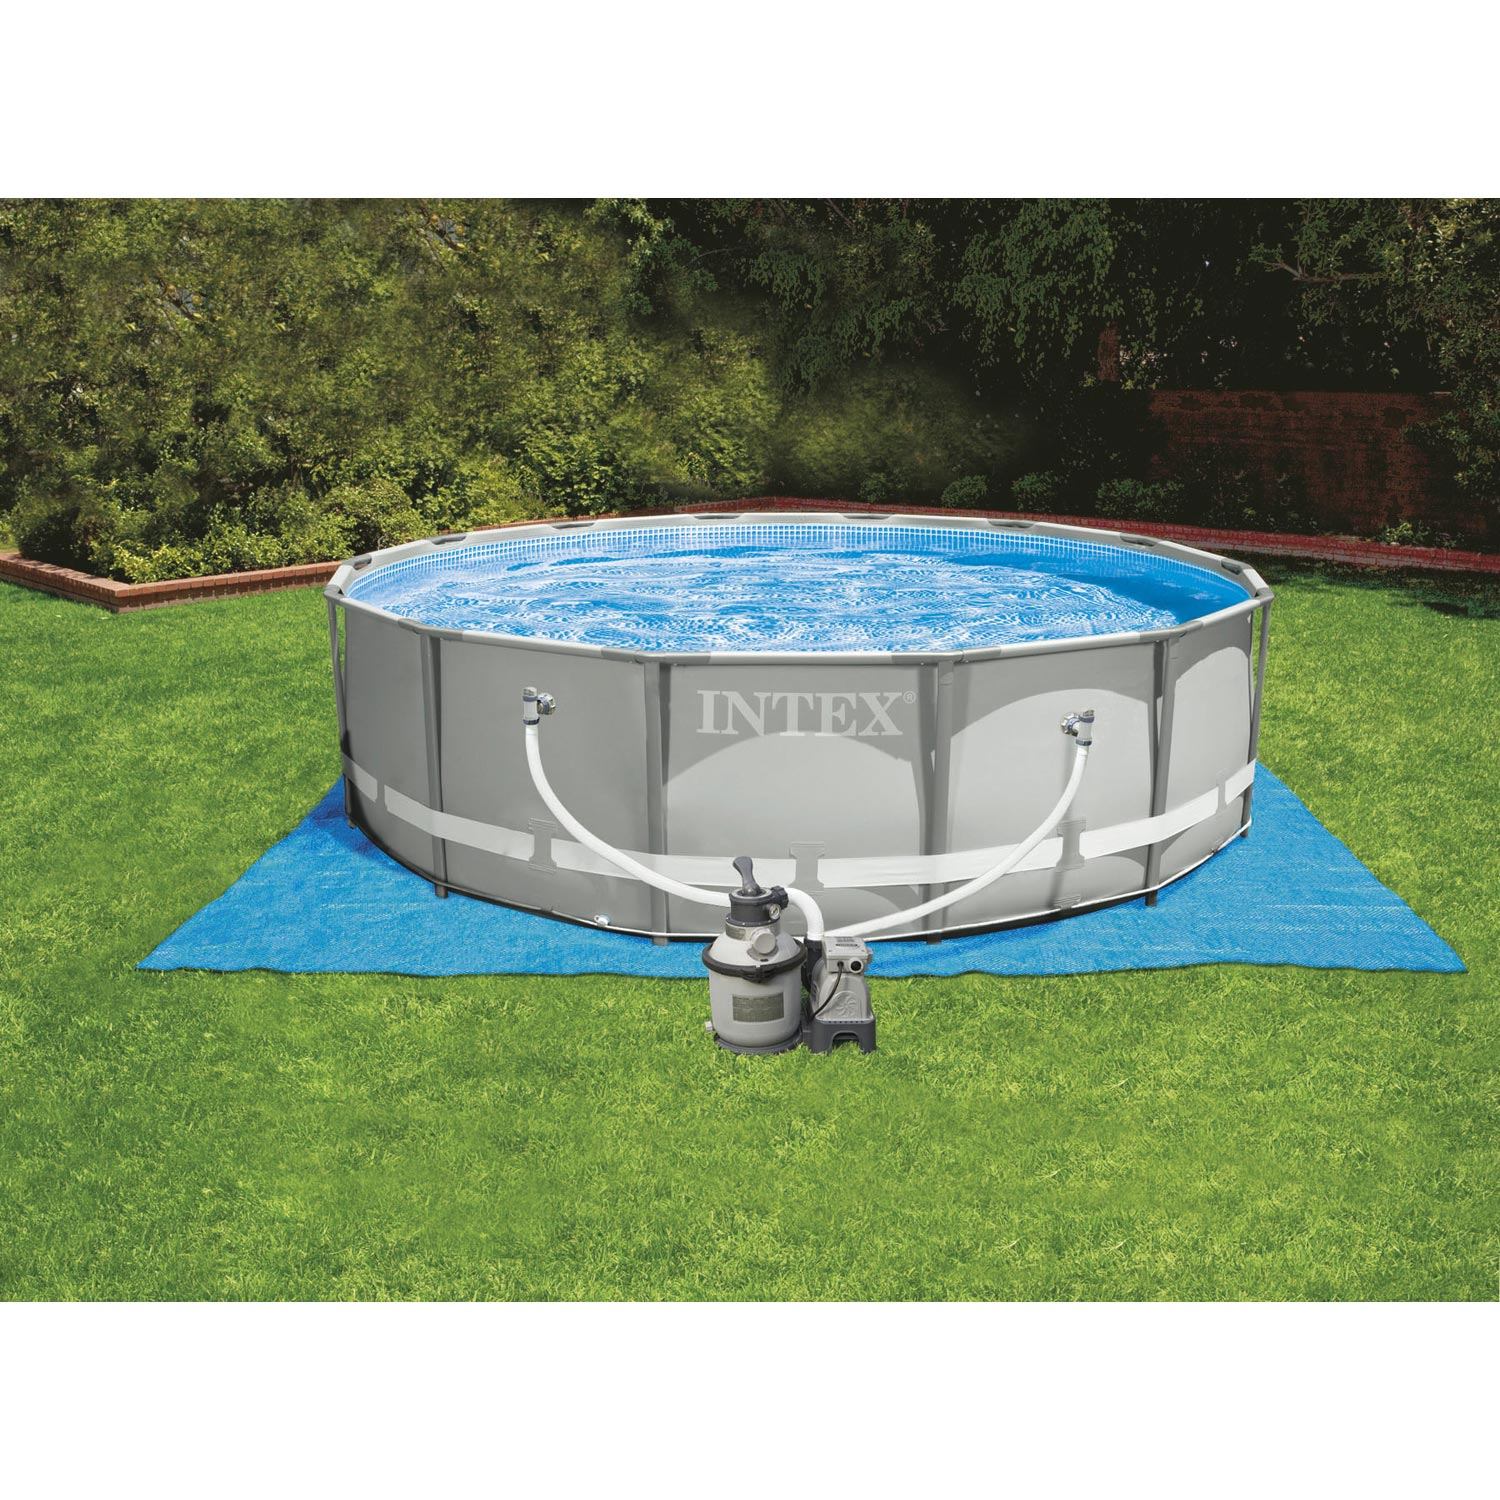 Piscine hors sol autoportante tubulaire ultra frame intex for Piscine hors sol jardin